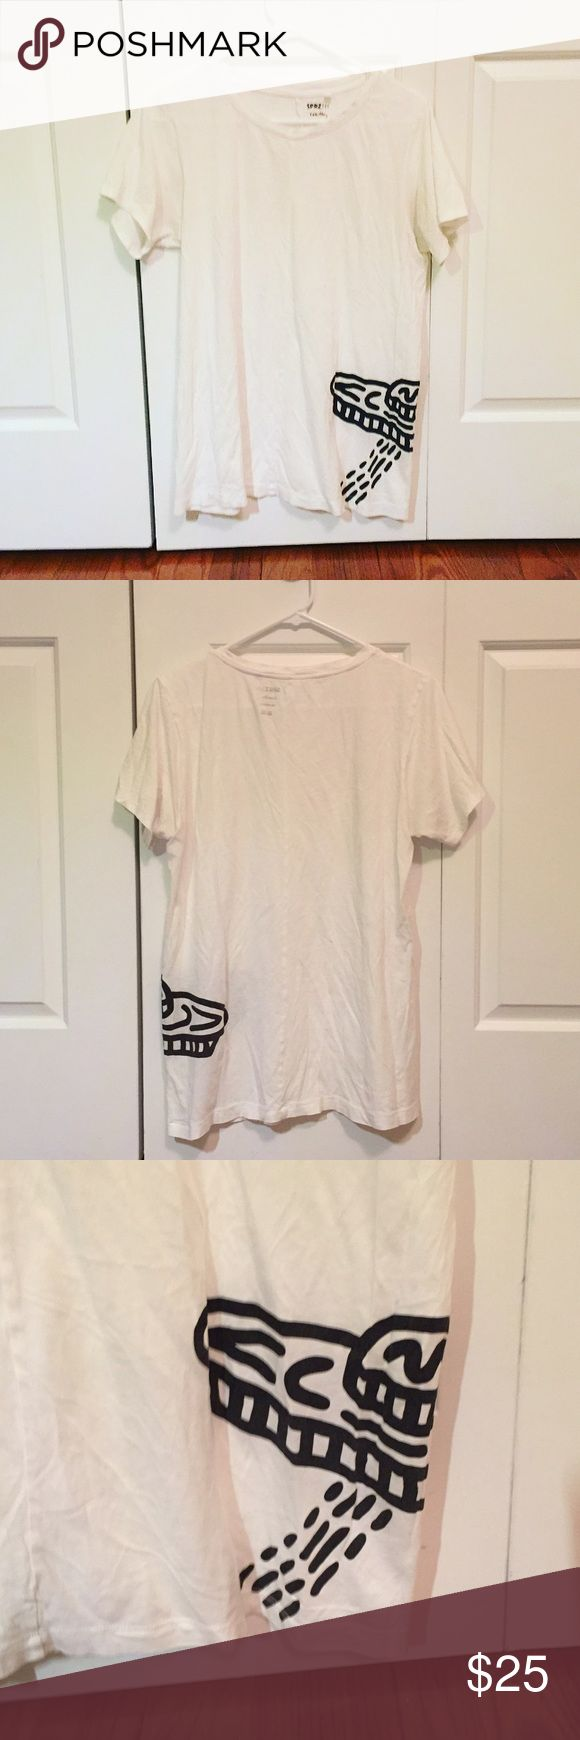 RARE✨ uniqlo x keith haring Uniqlo SPRG NY MoMa x Keith Haring white space ship tee. super soft material. rare item!  worn once. no flaws/snags. like new! 🎉   🍃 10% off bundles! 🍃 always open to offers! 🍃 feel free to leave any questions or comments! Uniqlo Tops Tees - Short Sleeve